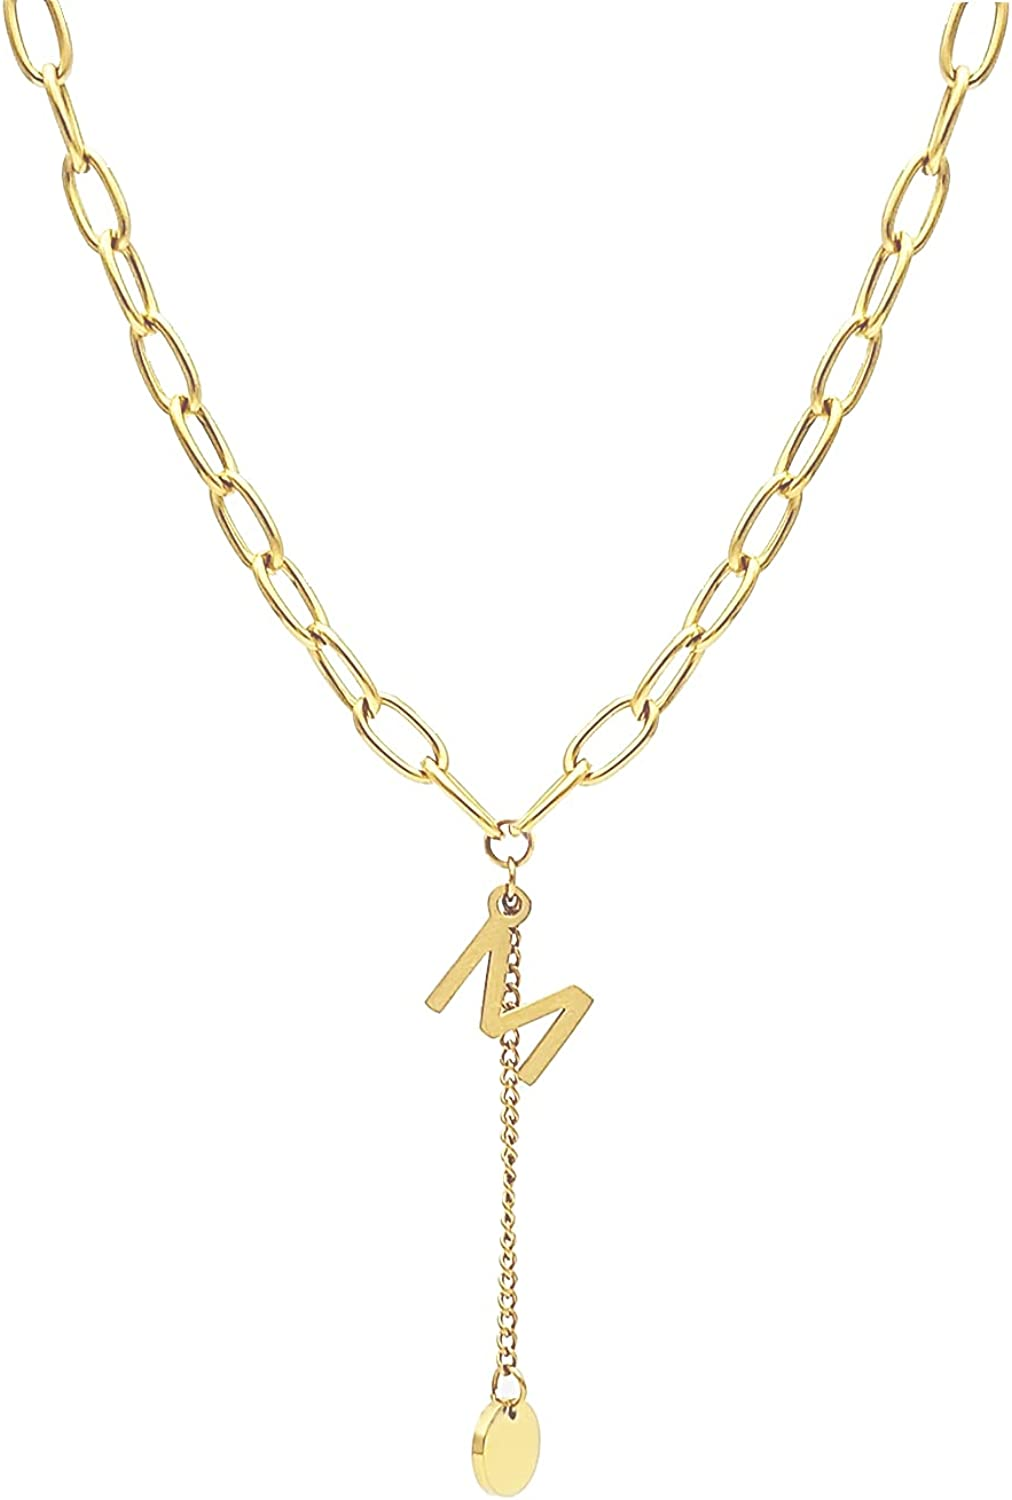 GYGOLEP Exquisite Ladies Ranking TOP13 Necklace 18K Store Cut Gold-Plated Simple and